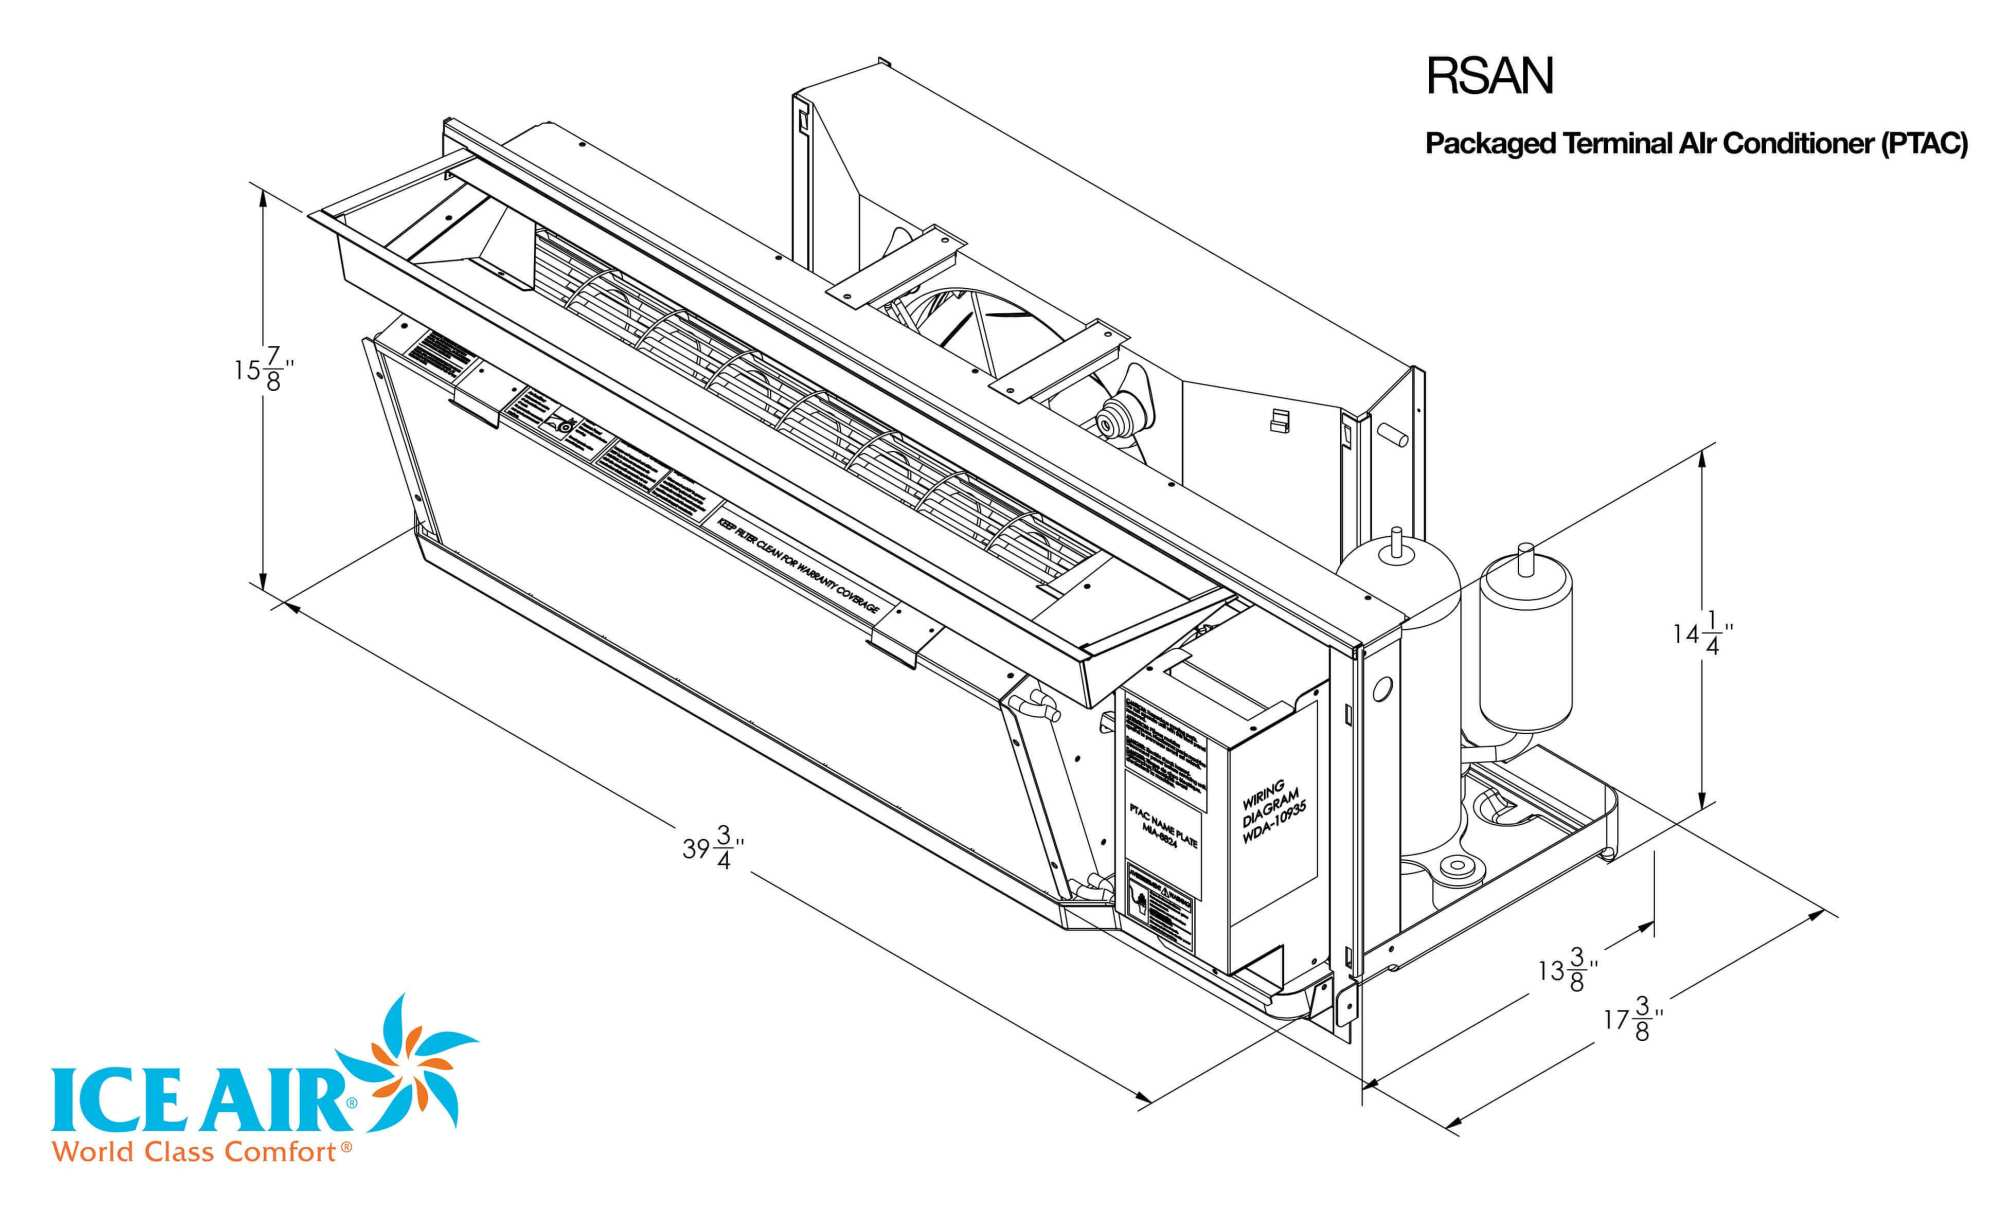 hight resolution of rsan dimensional drawing ice air limited warranty ptac replacement chart